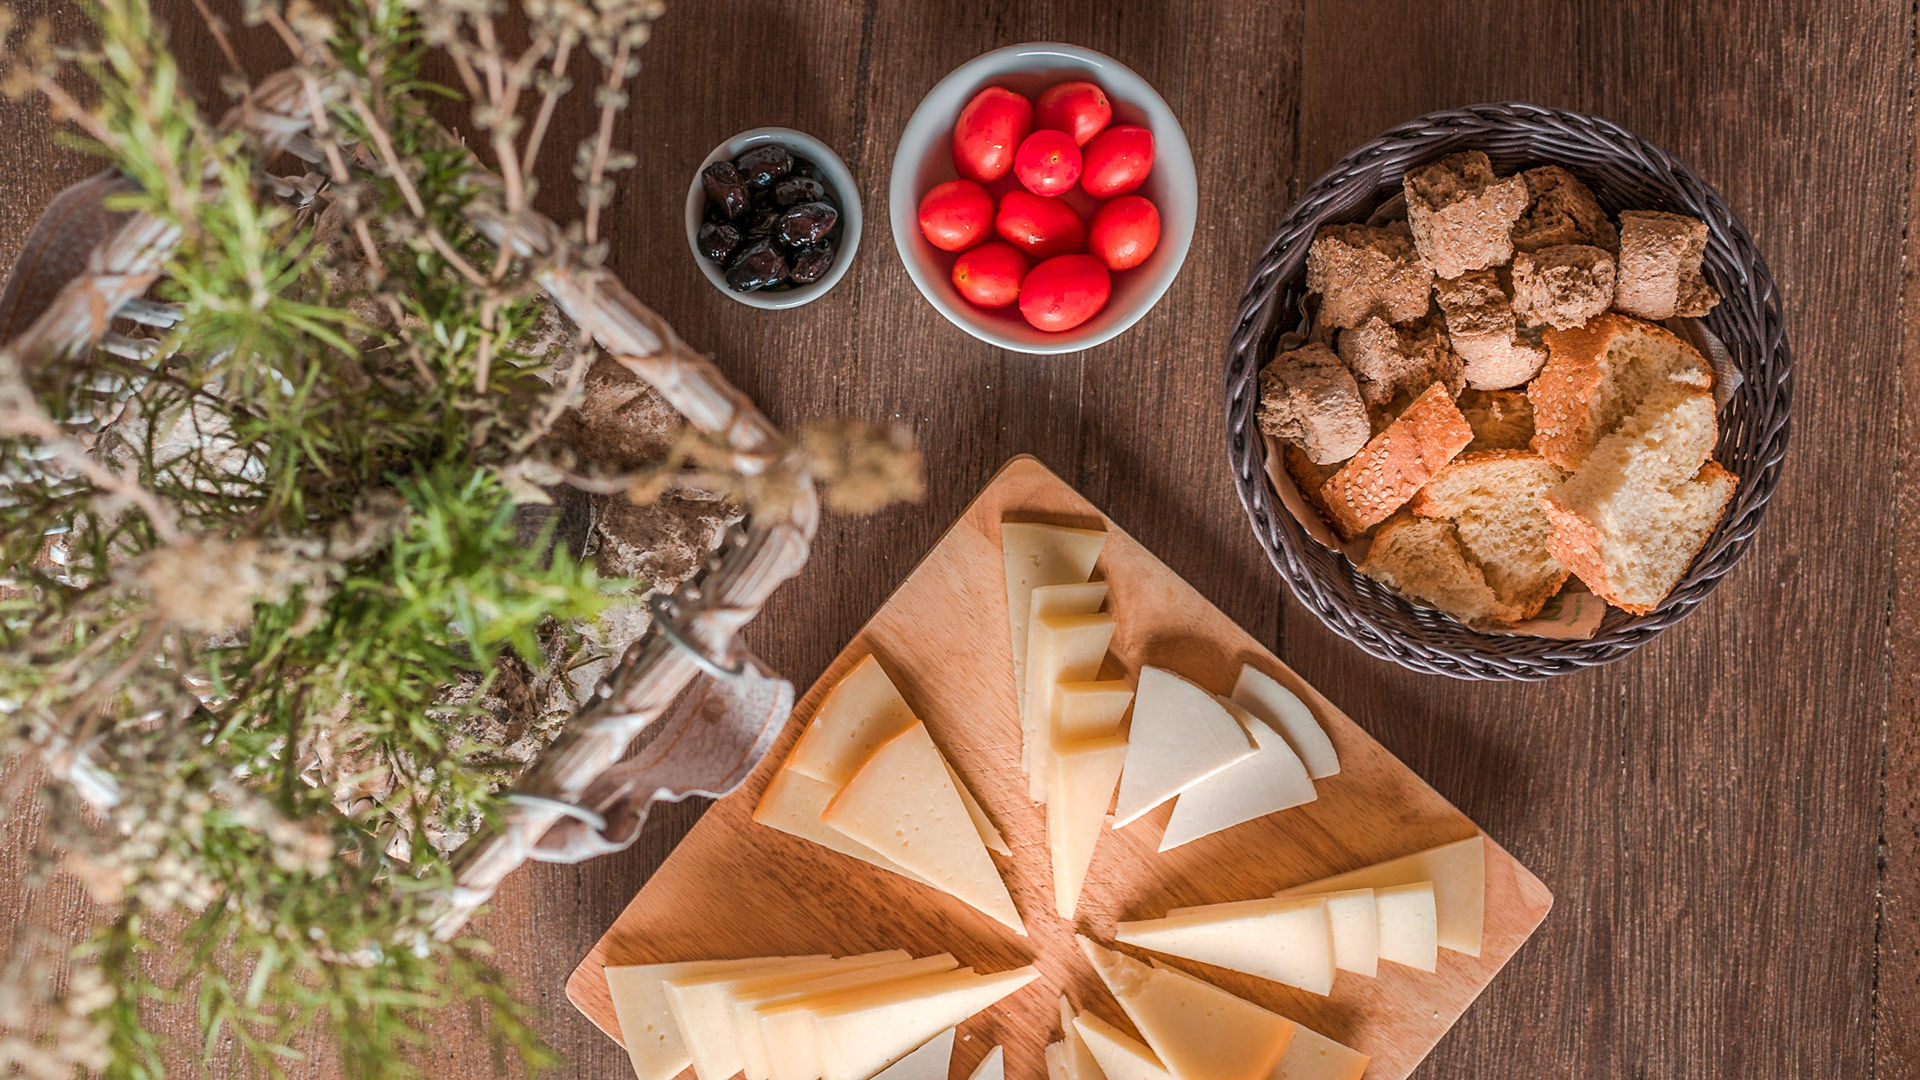 A variety of local cheese, cherry tomato and Cretan paximadi to accompany your wine!